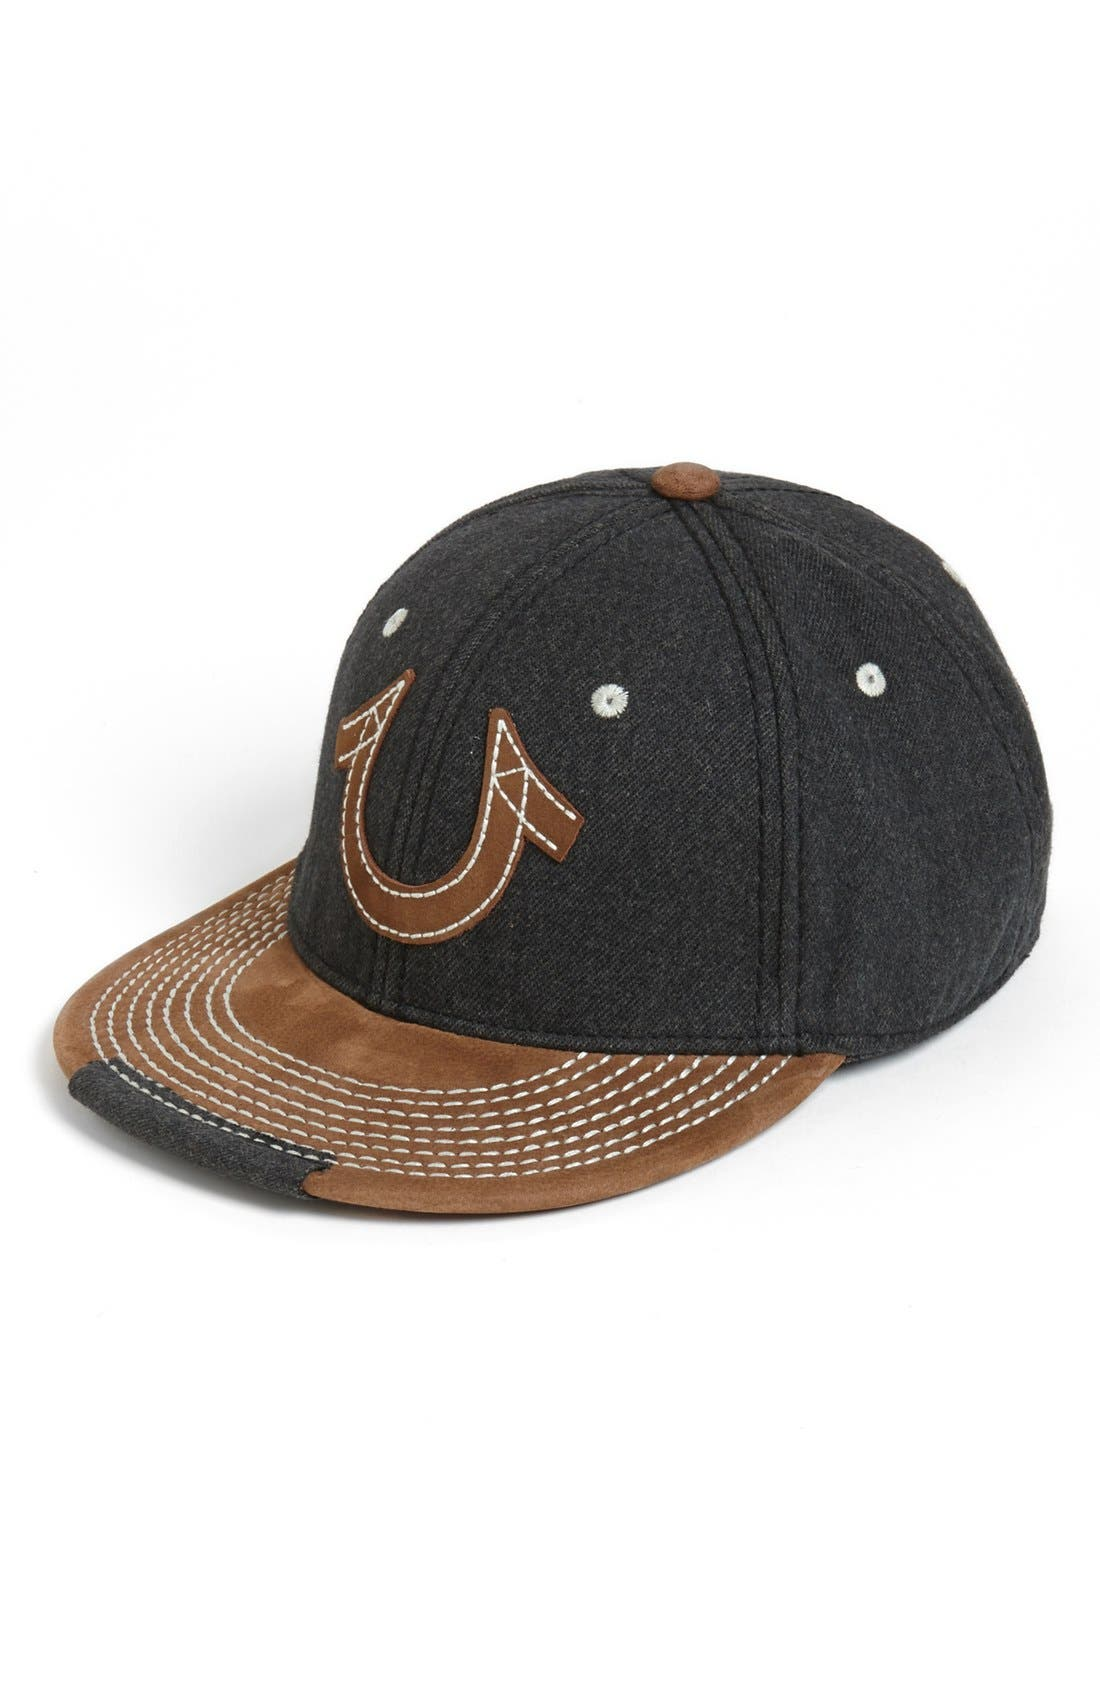 Main Image - True Religion Brand Jeans 'Horseshoe' Baseball Cap